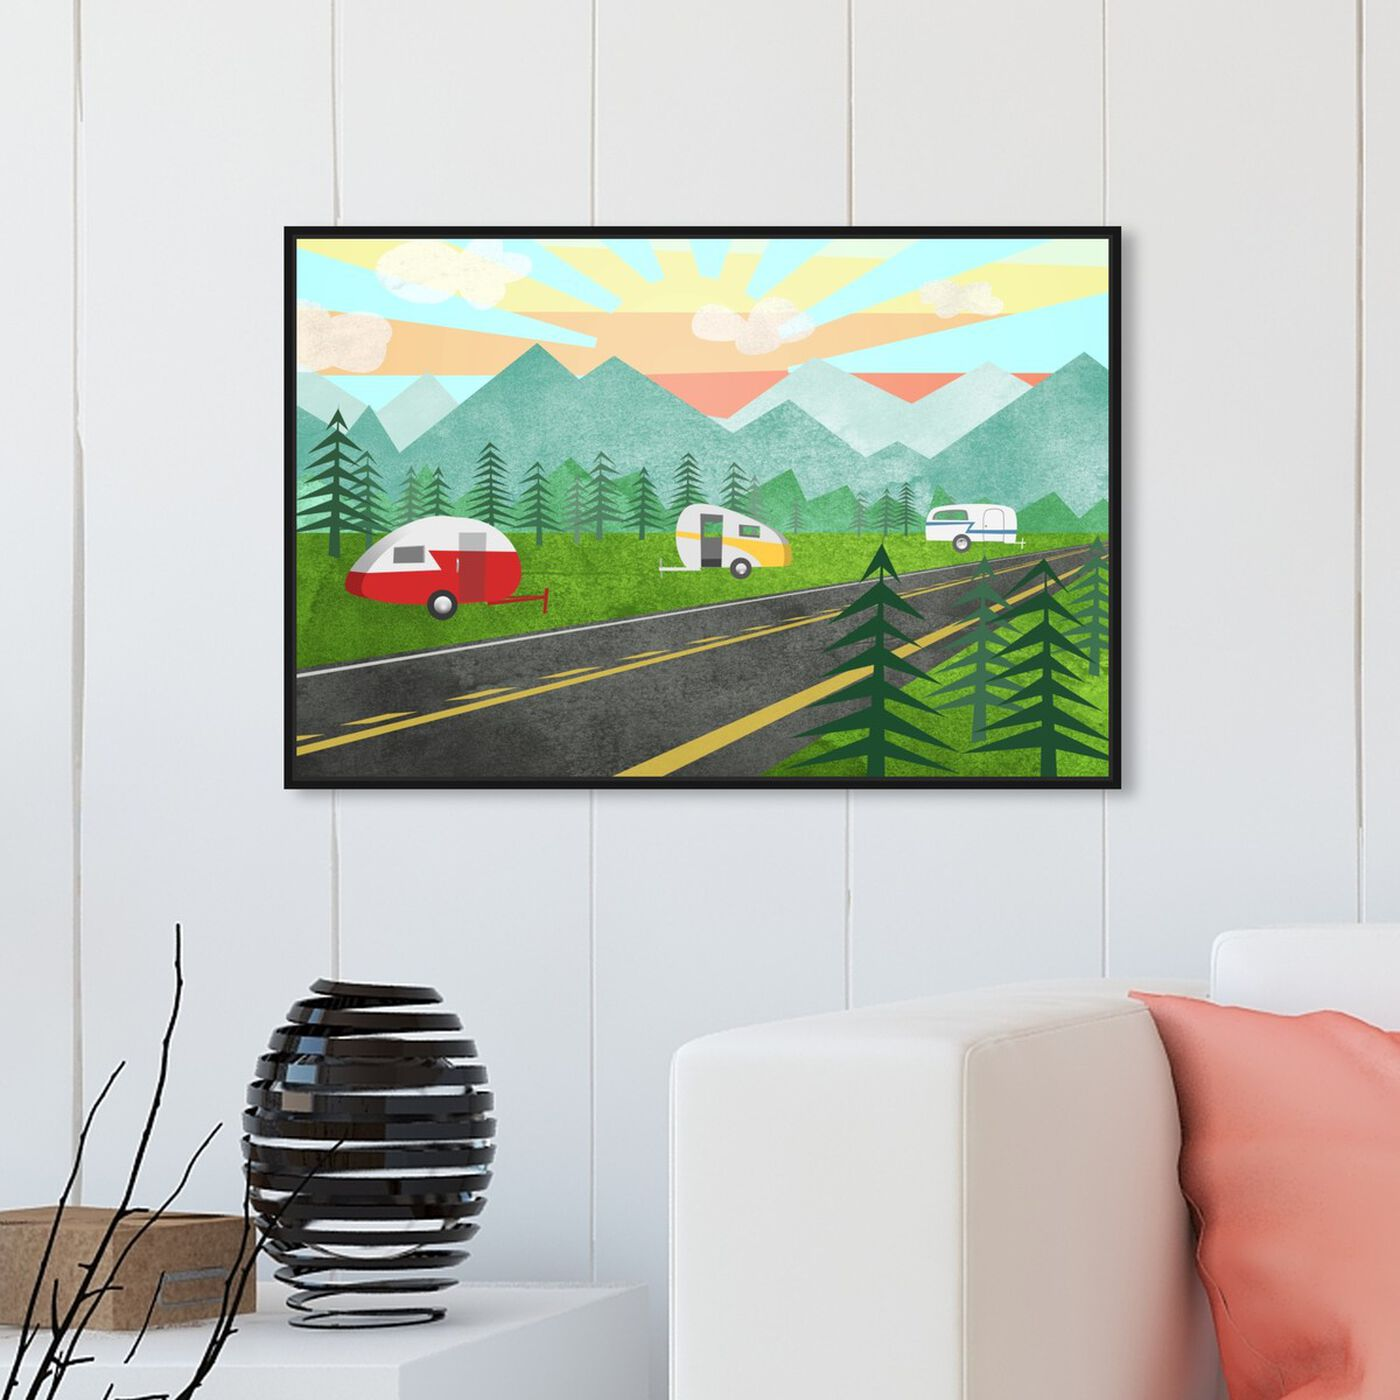 Hanging view of Campers In the Wild featuring entertainment and hobbies and camping art.